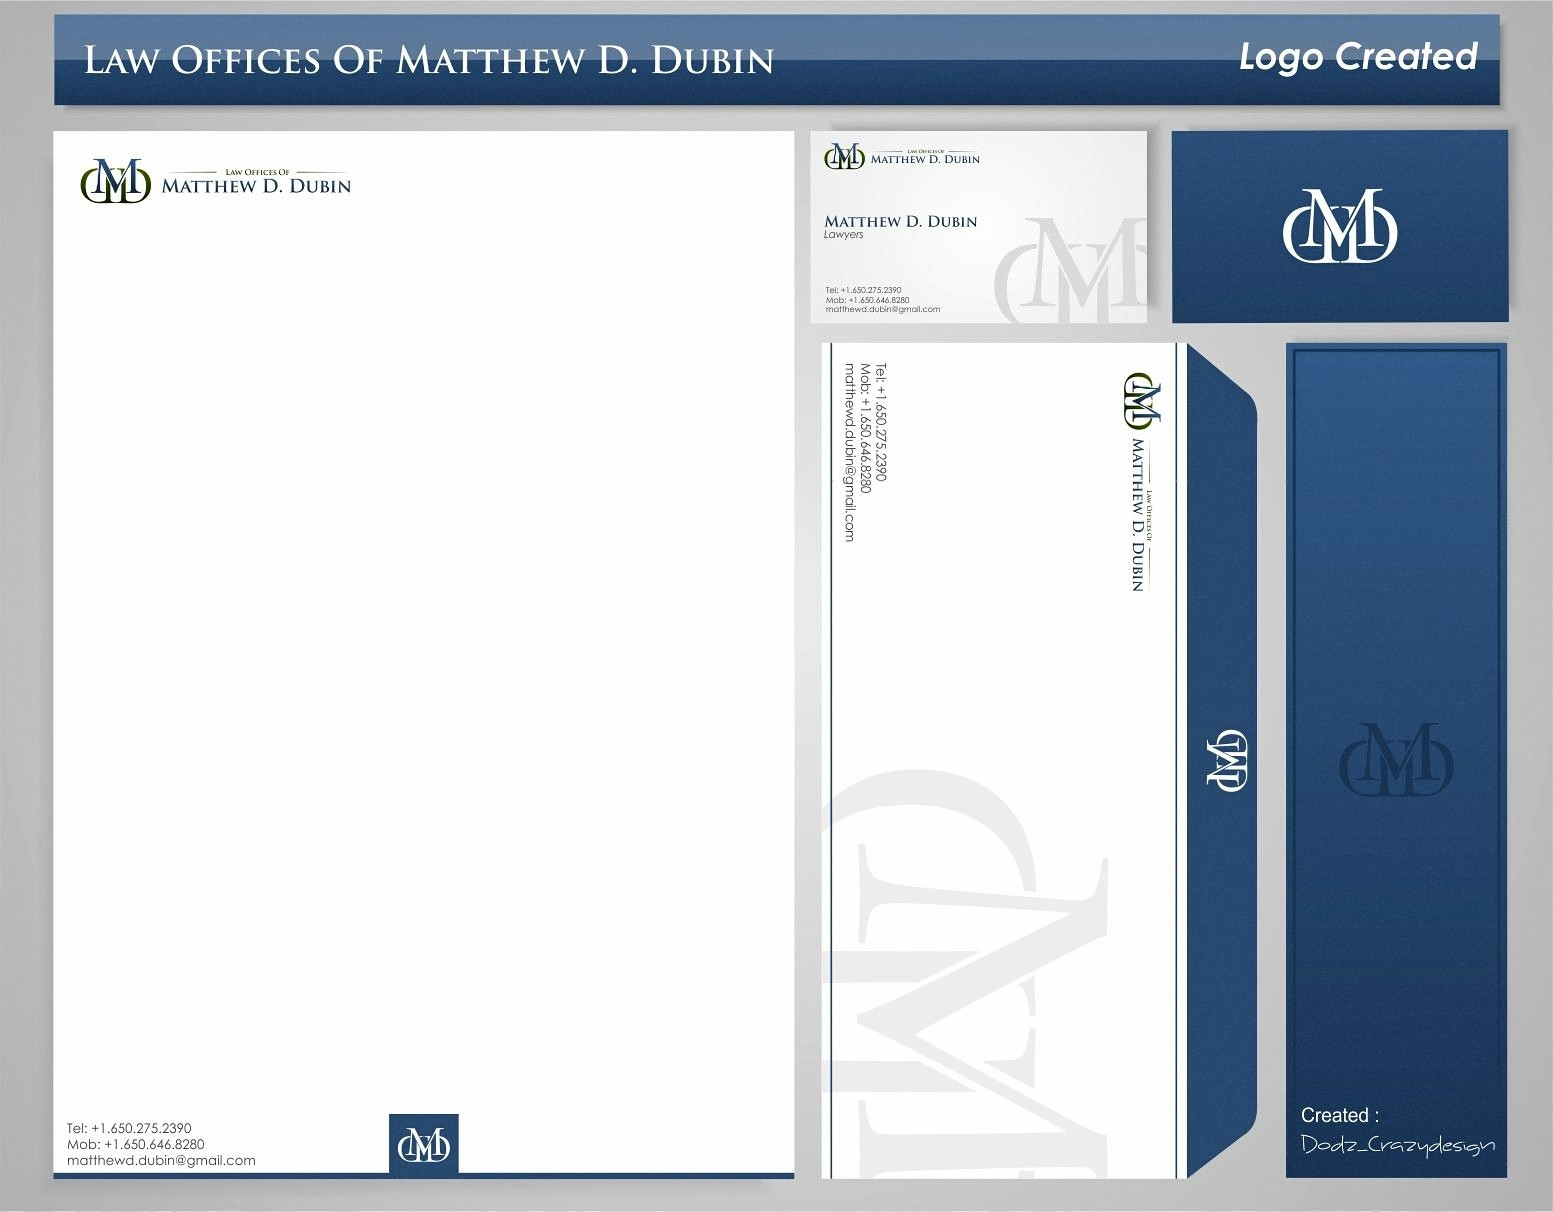 Create the next logo for Law Offices of Matthew D. Dubin